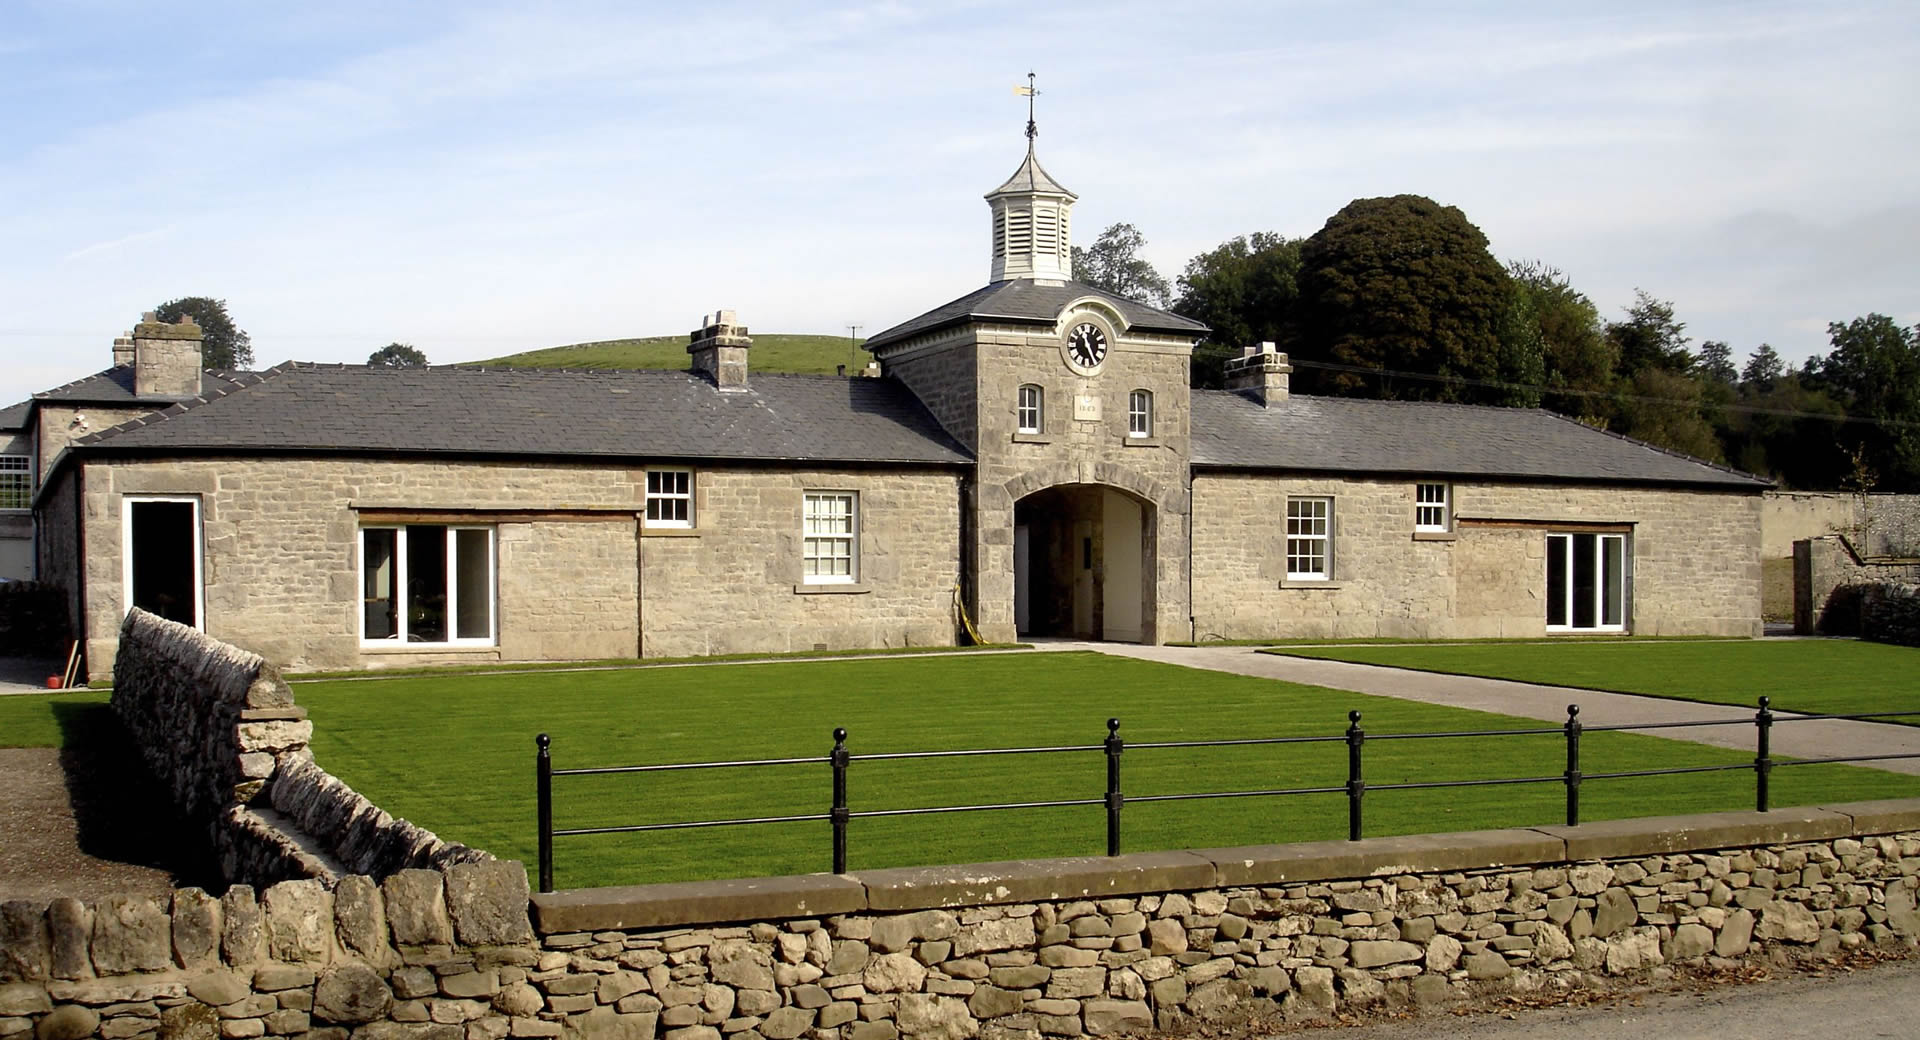 Dalton Hall Rural Business Centre Cumbria